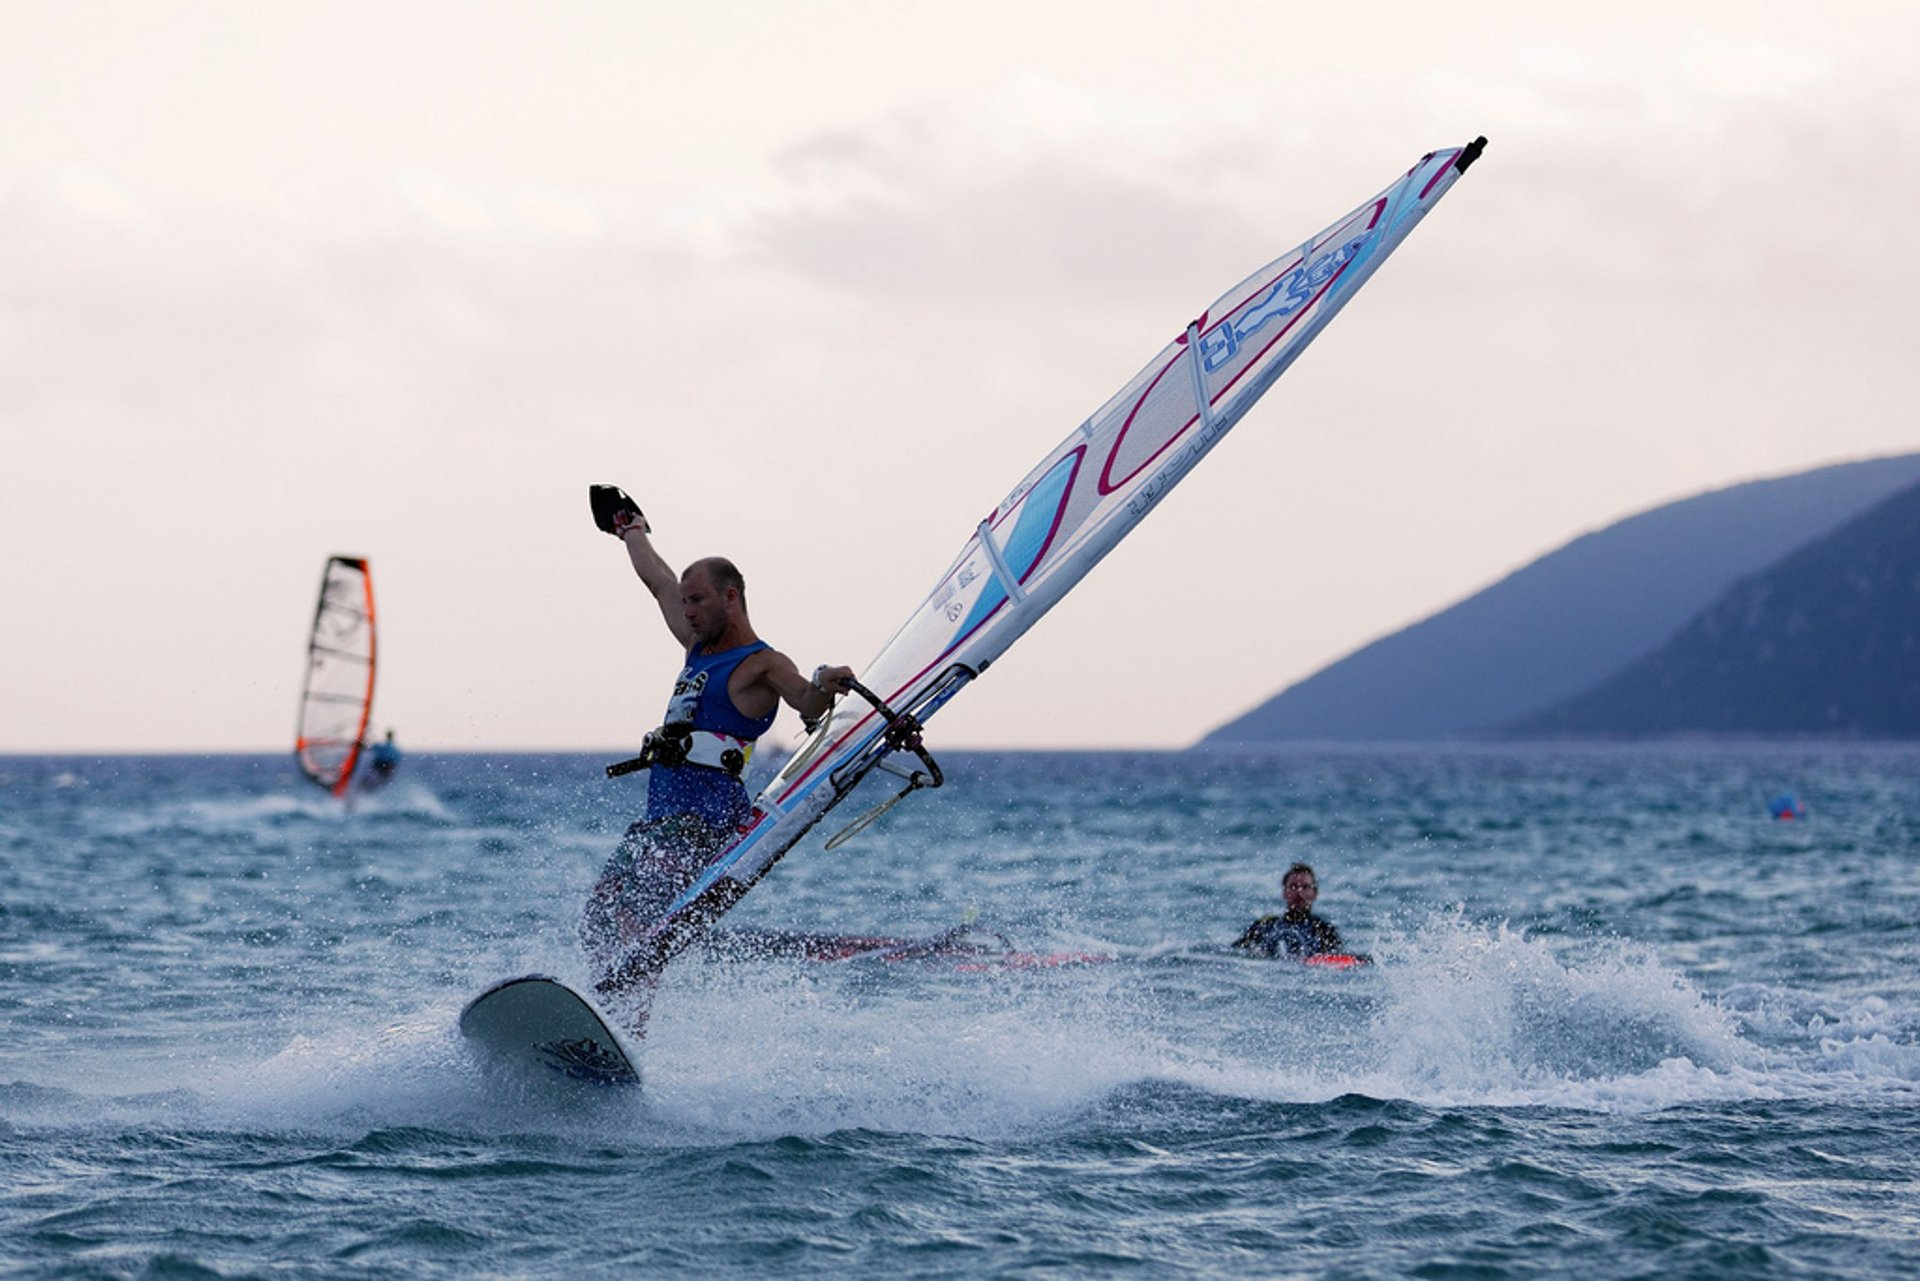 Windsurfing & Kitesurfing in Greece 2020 - Best Time